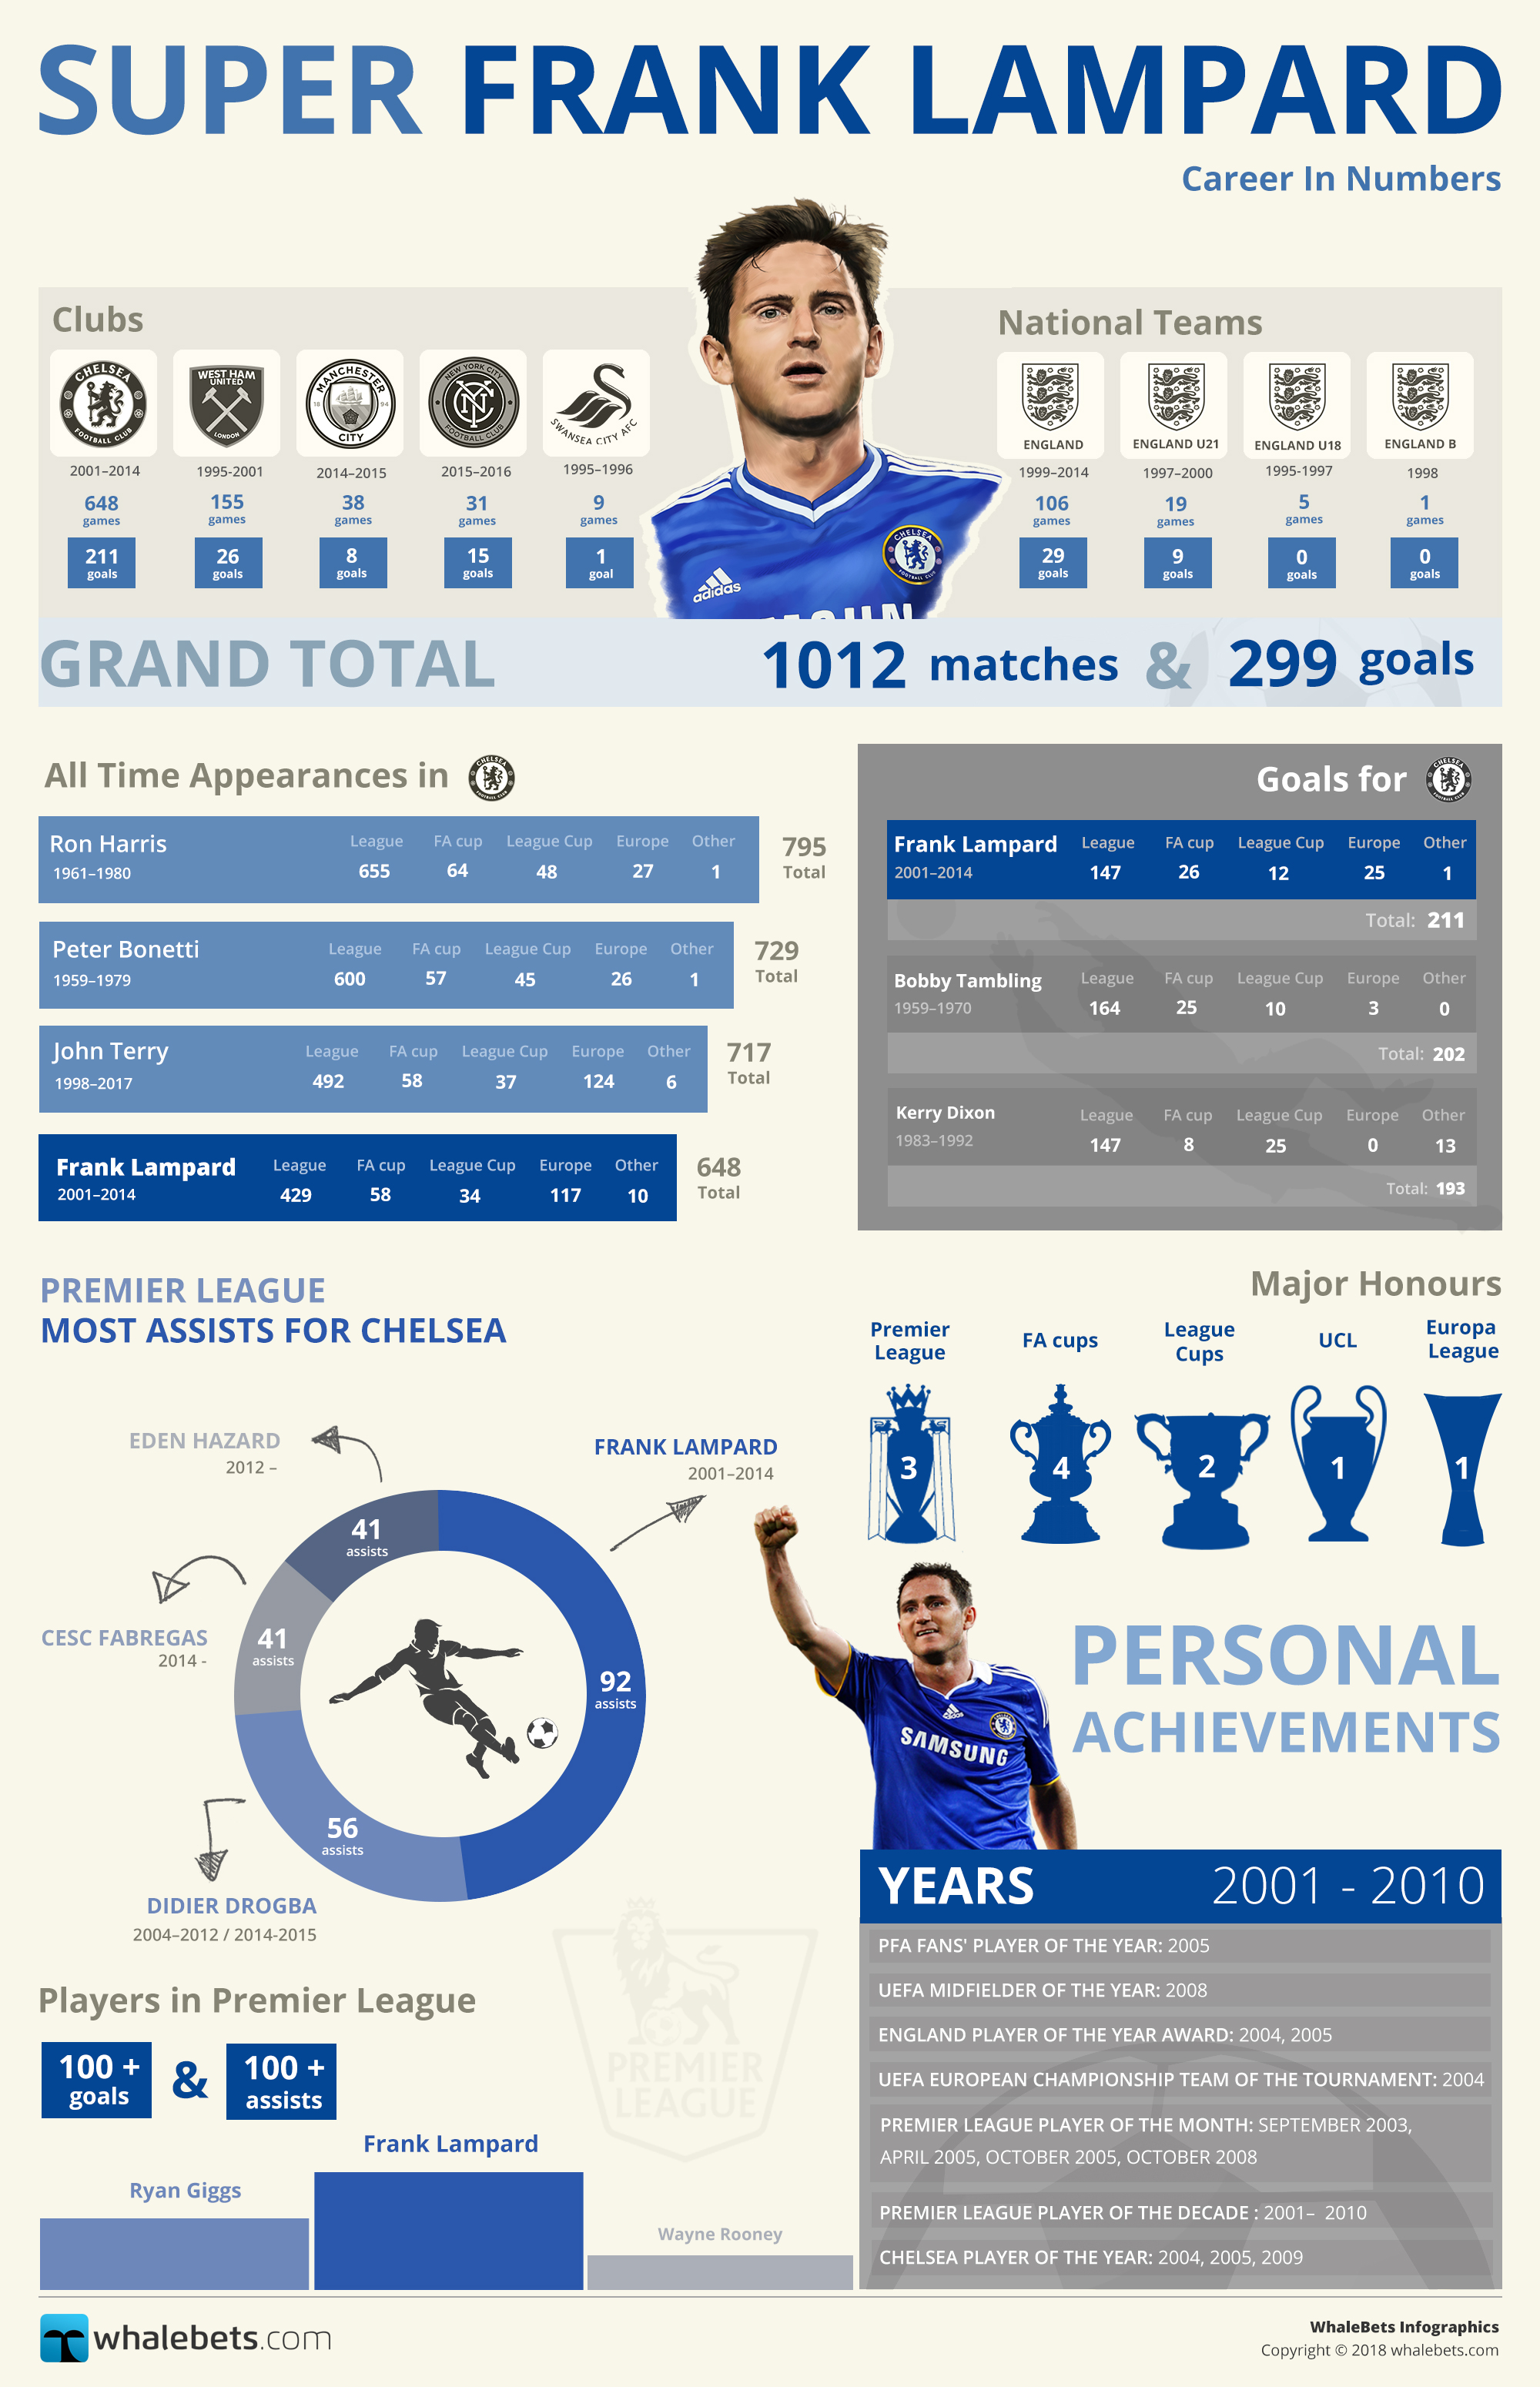 Super Frank Lampard Infographic